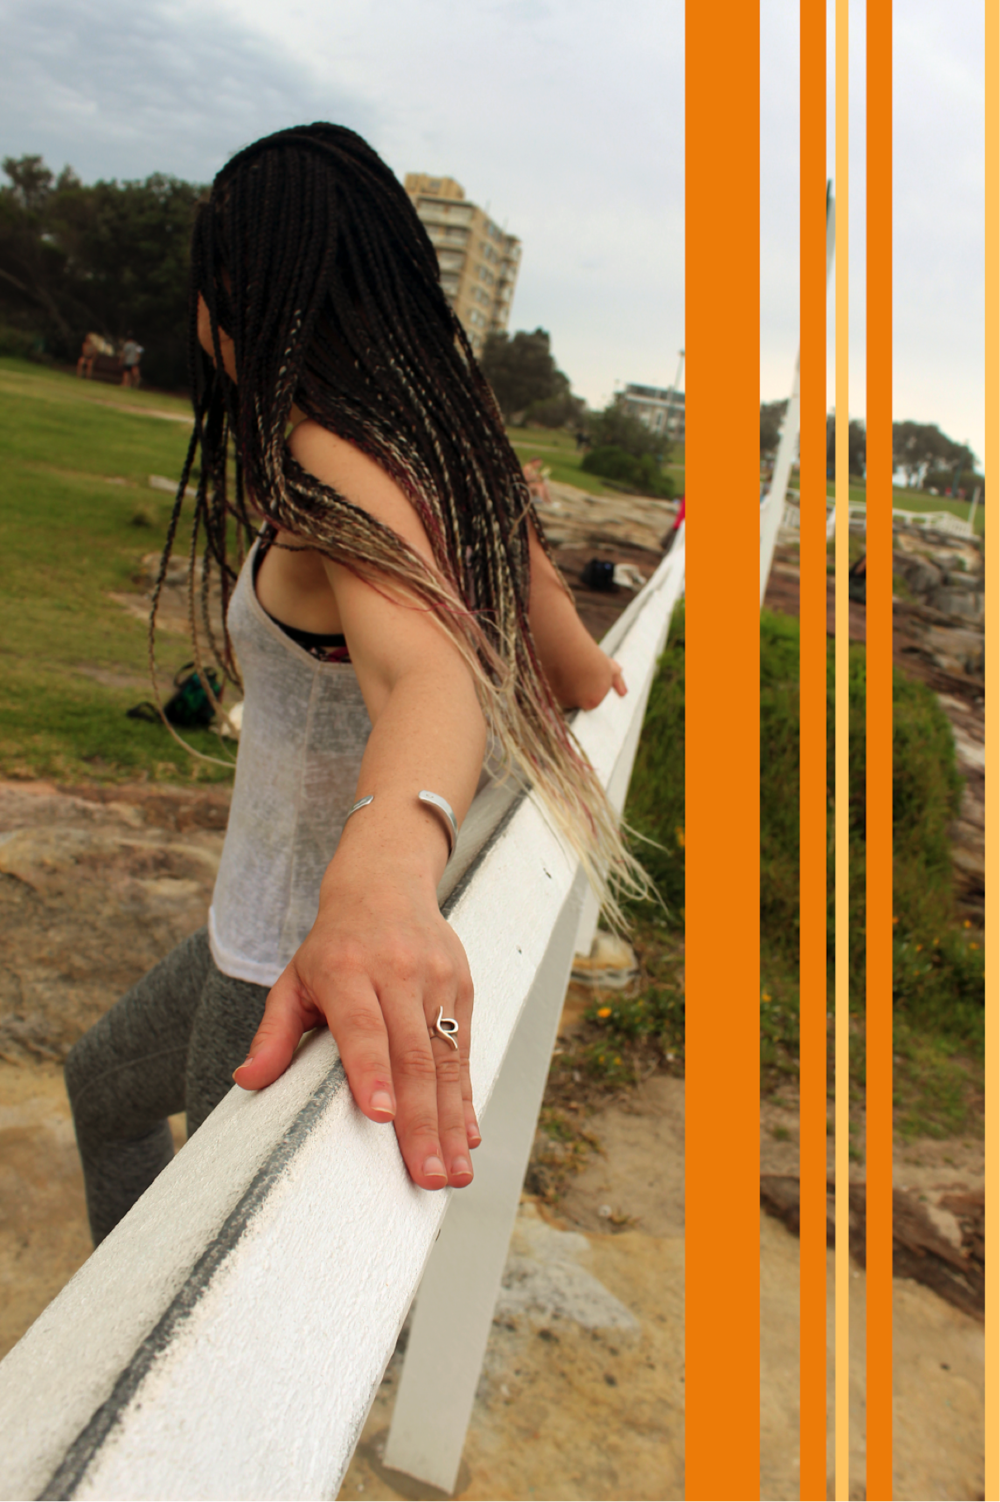 [image description: image of Ria leaning on a white fence taken from the side. You can clearly see a ring on her left hand, which has the eating disorder recovery symbol. She has brown braids which are magenta and blonde at the tips. There are orange and yellow vertical stripes on the right-hand side of the image].